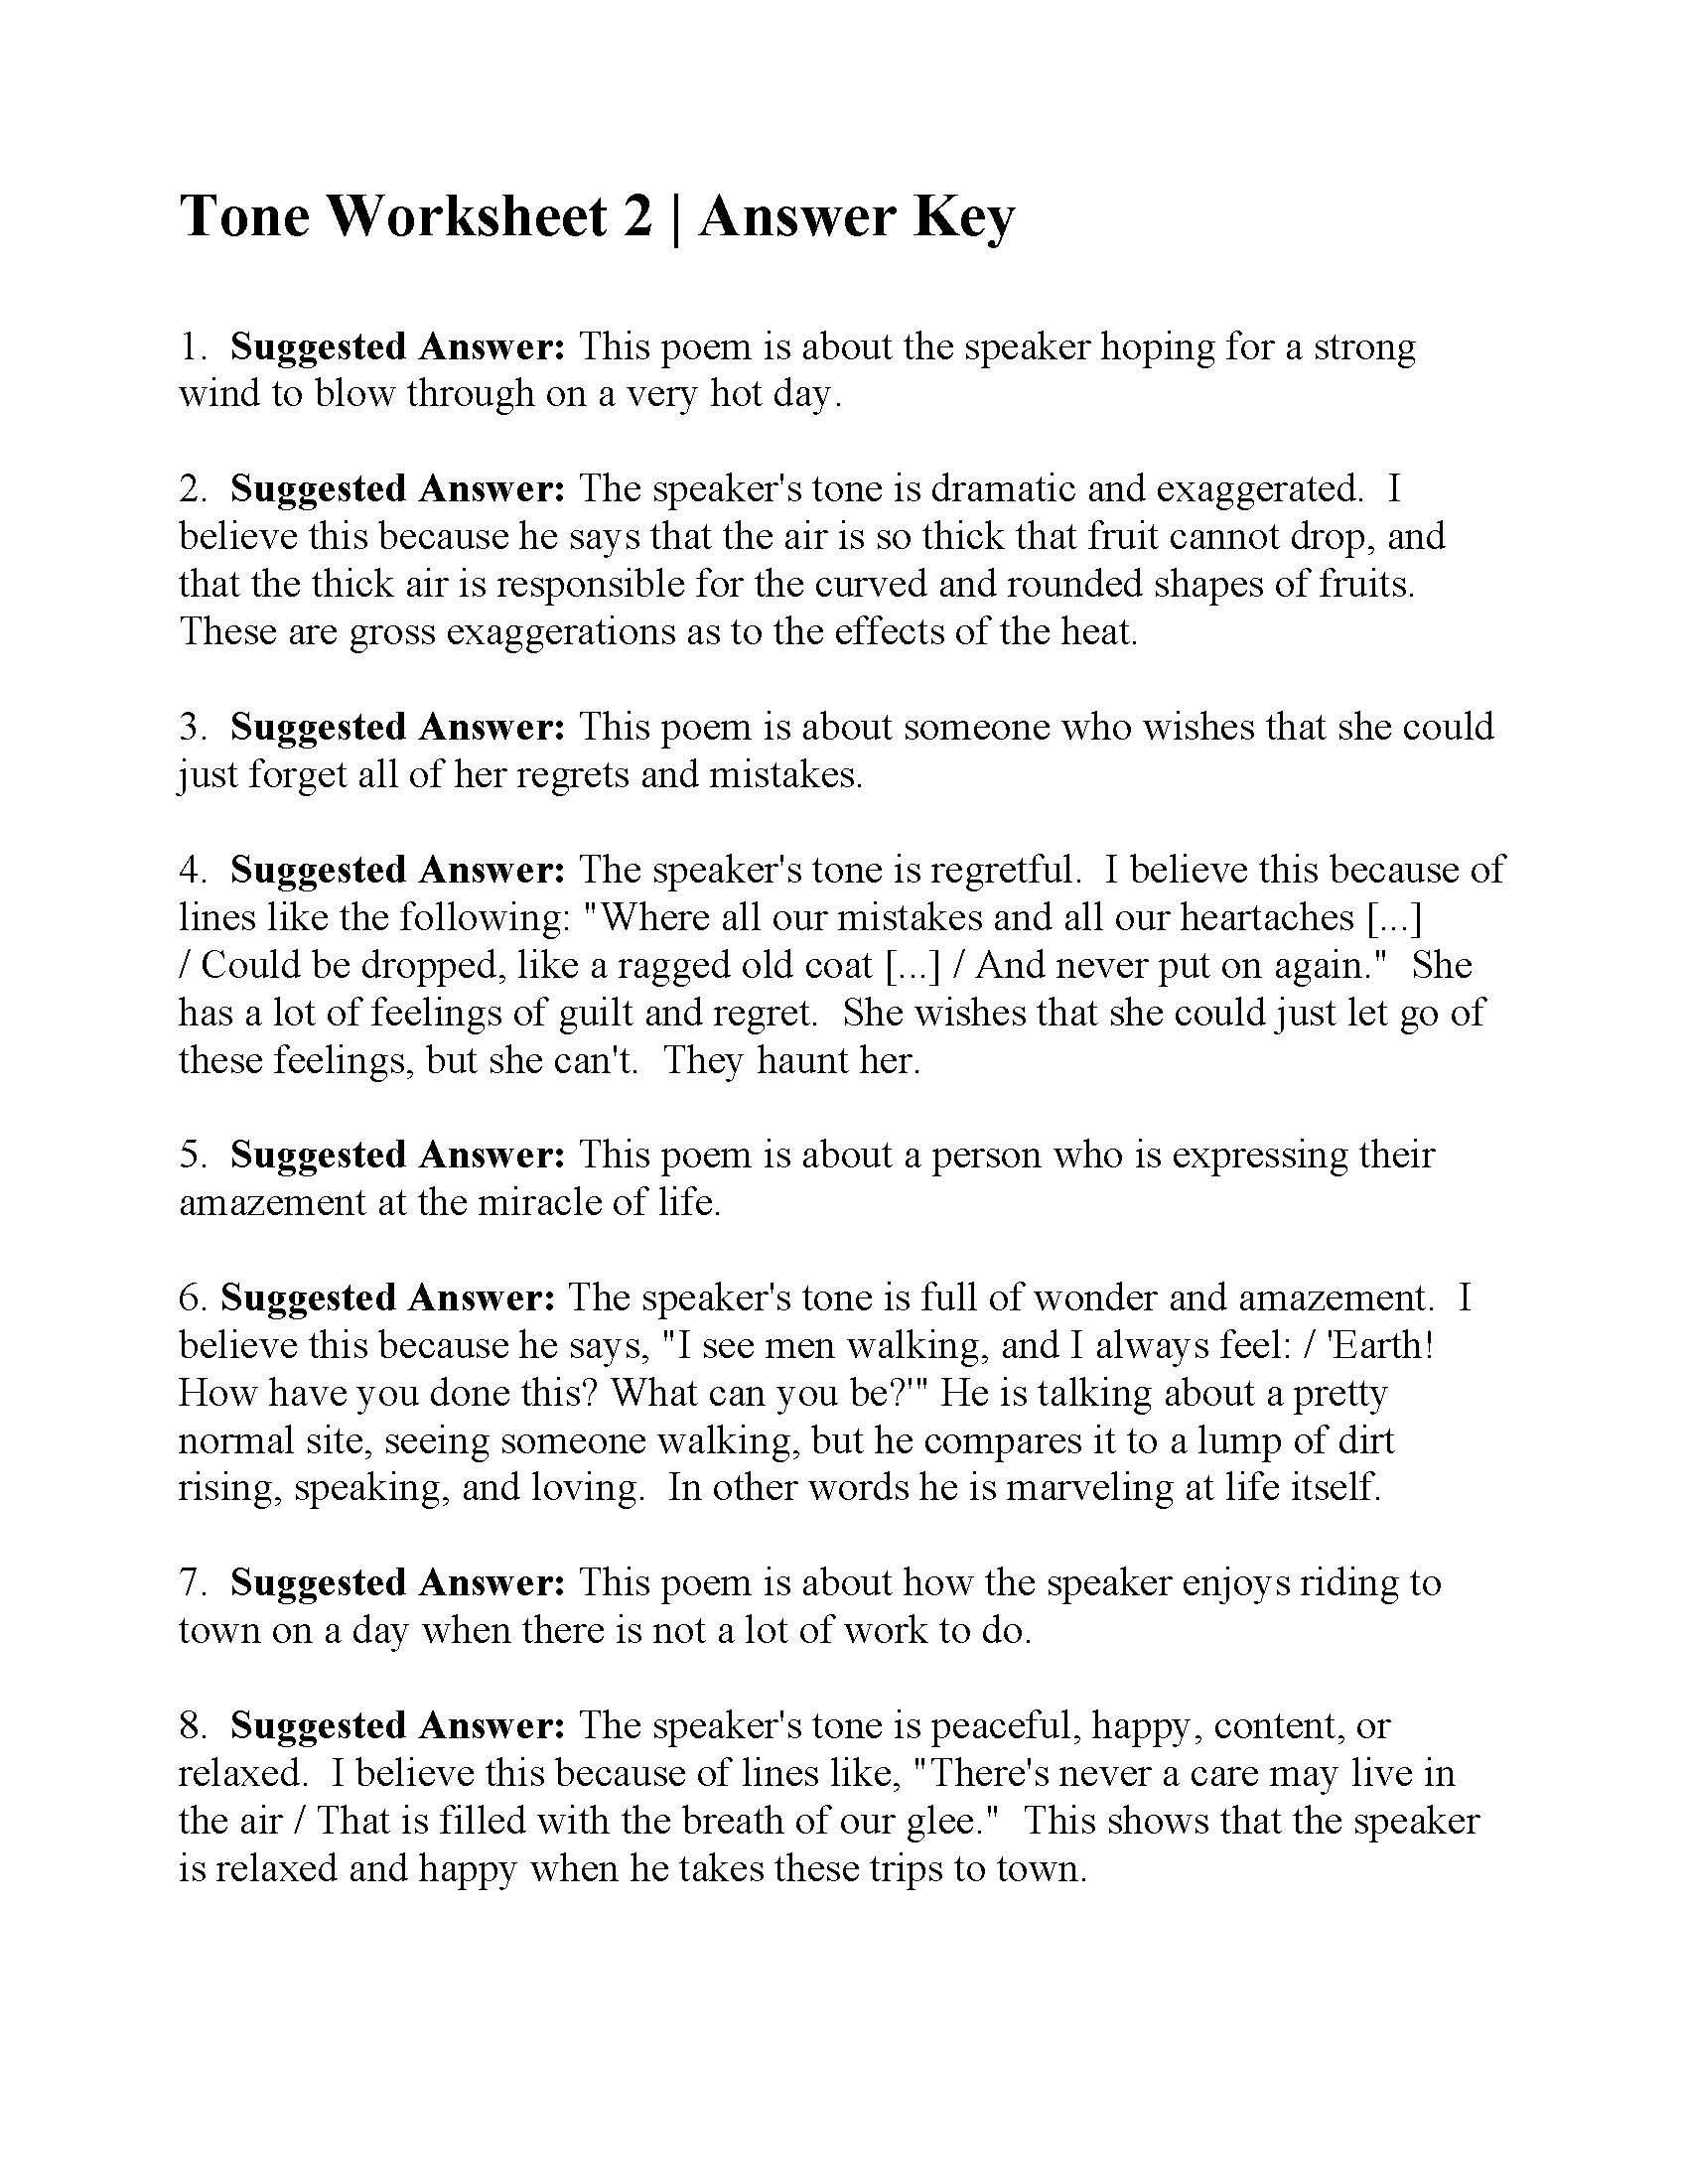 Poetry Practice Worksheets This is the Answer Key for the tone Worksheet 2